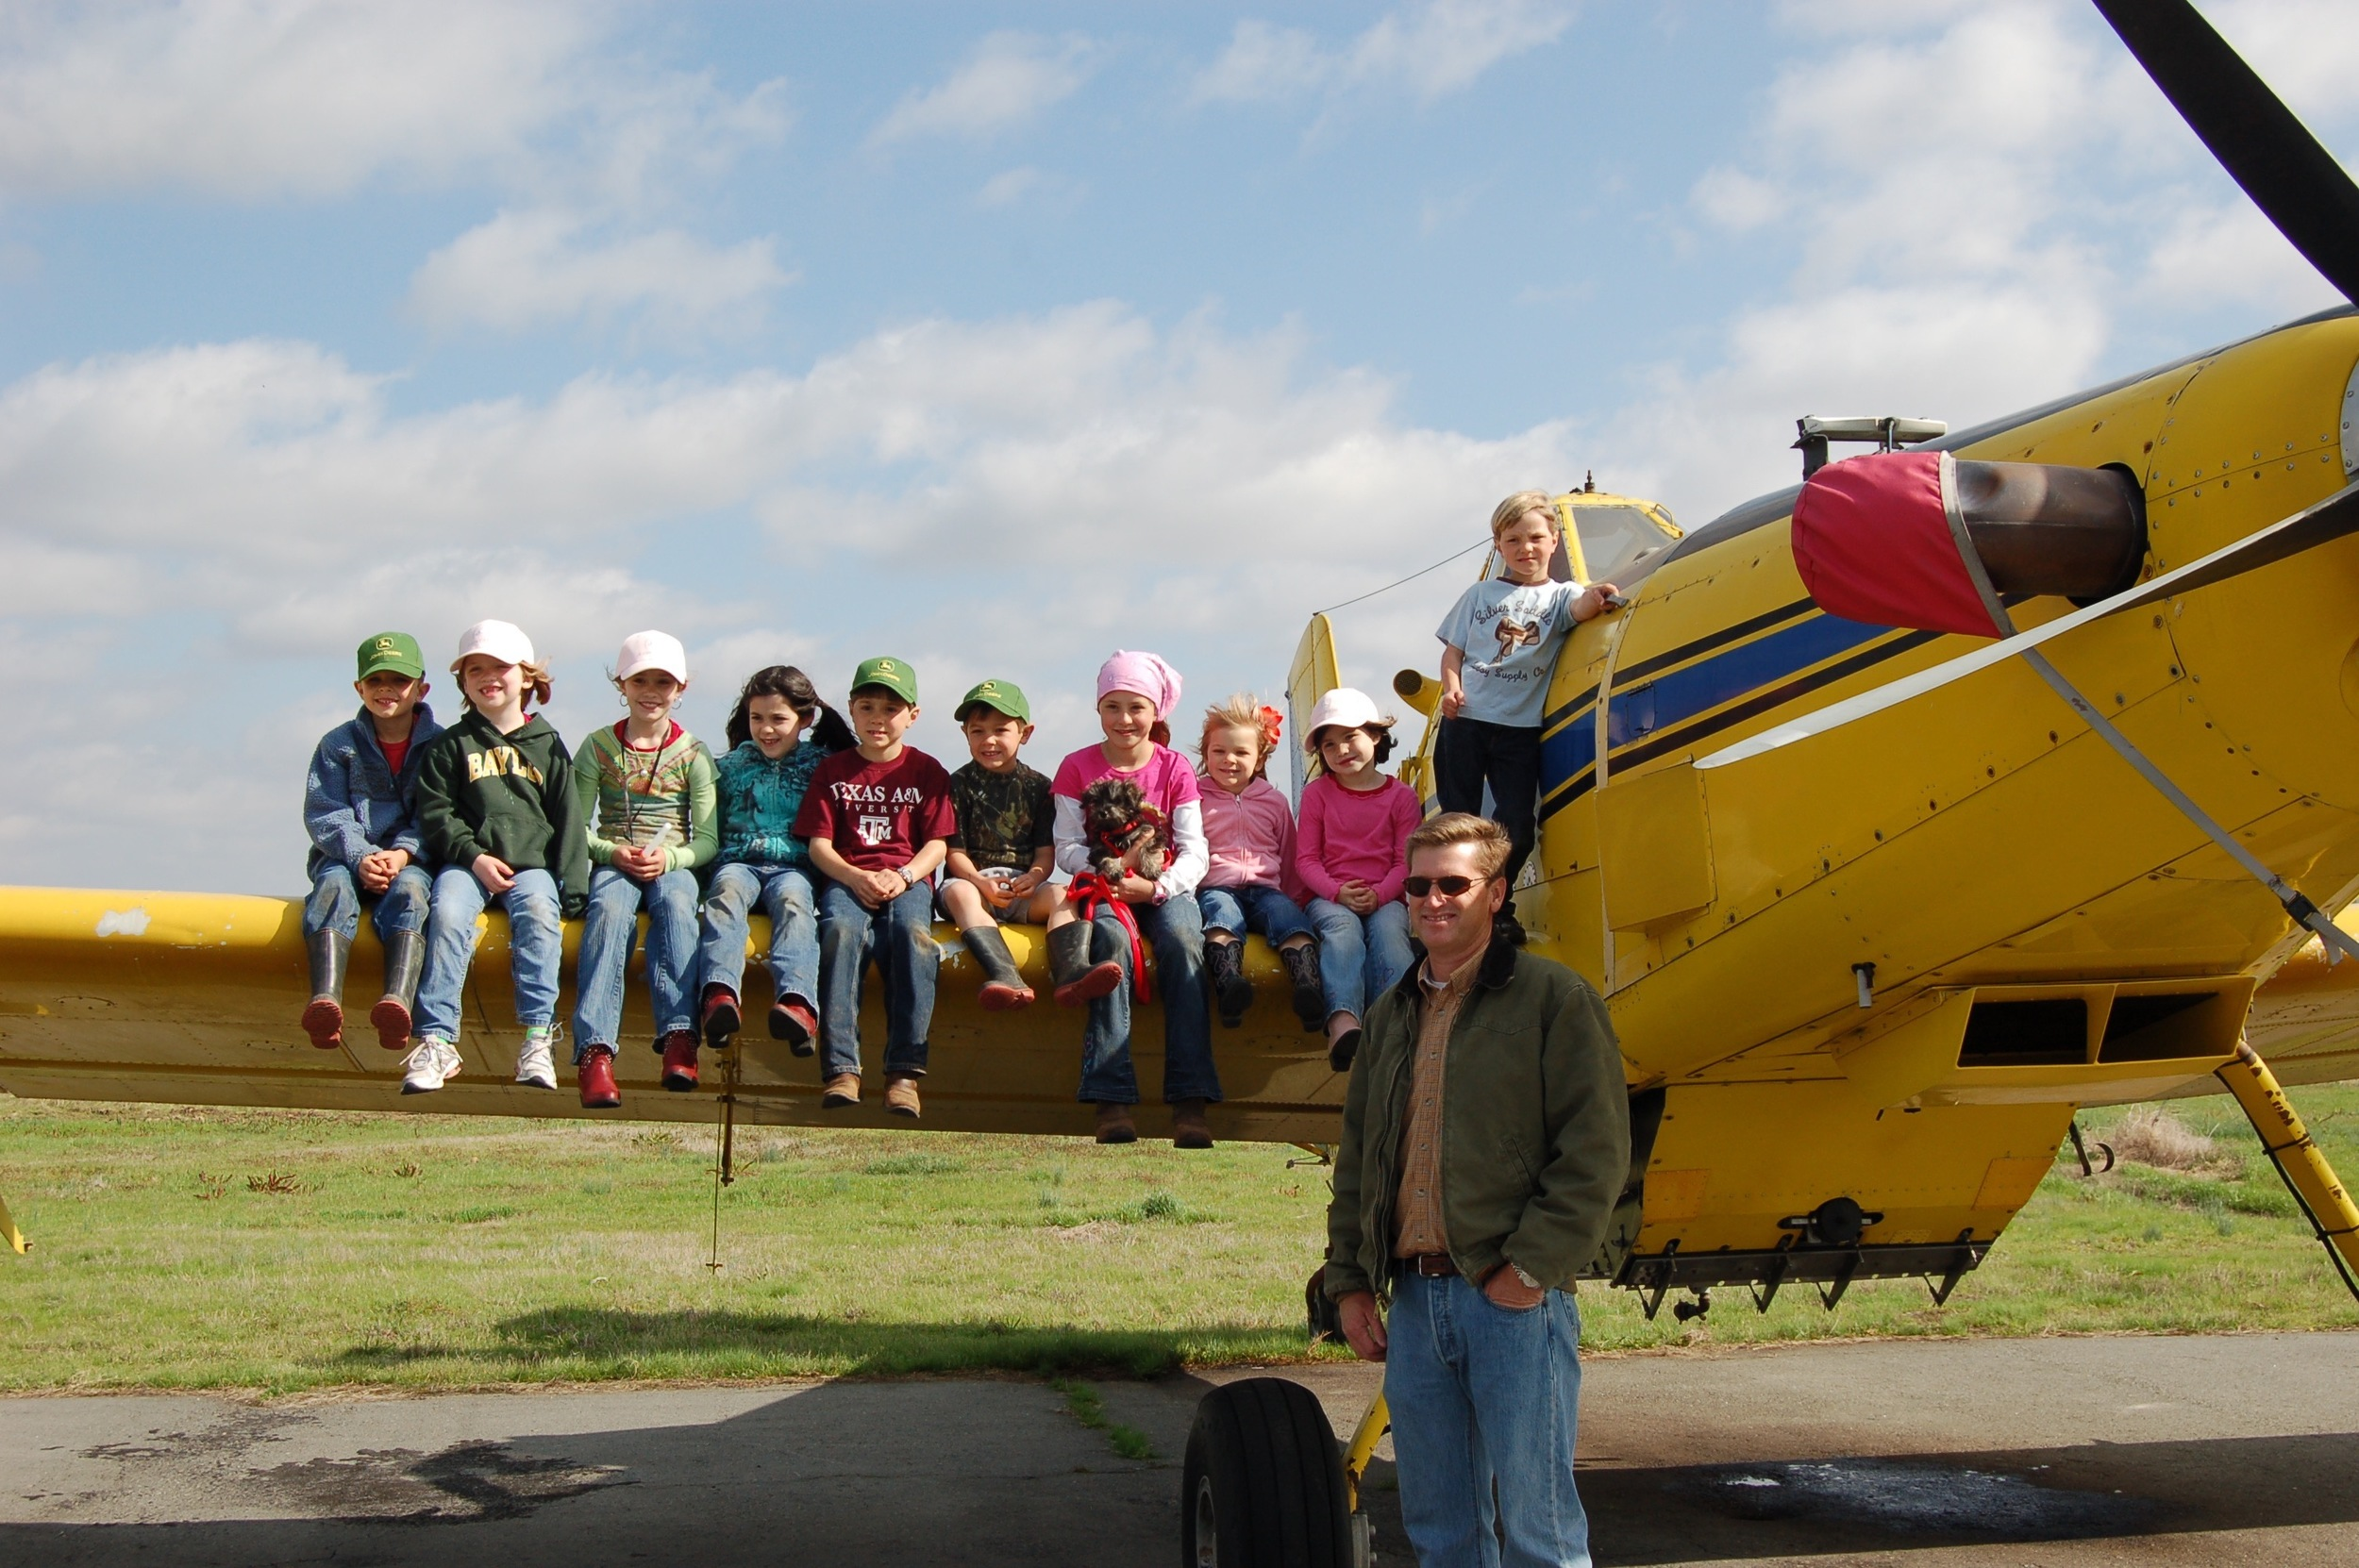 friends learning about ag airplanes at the rural airport